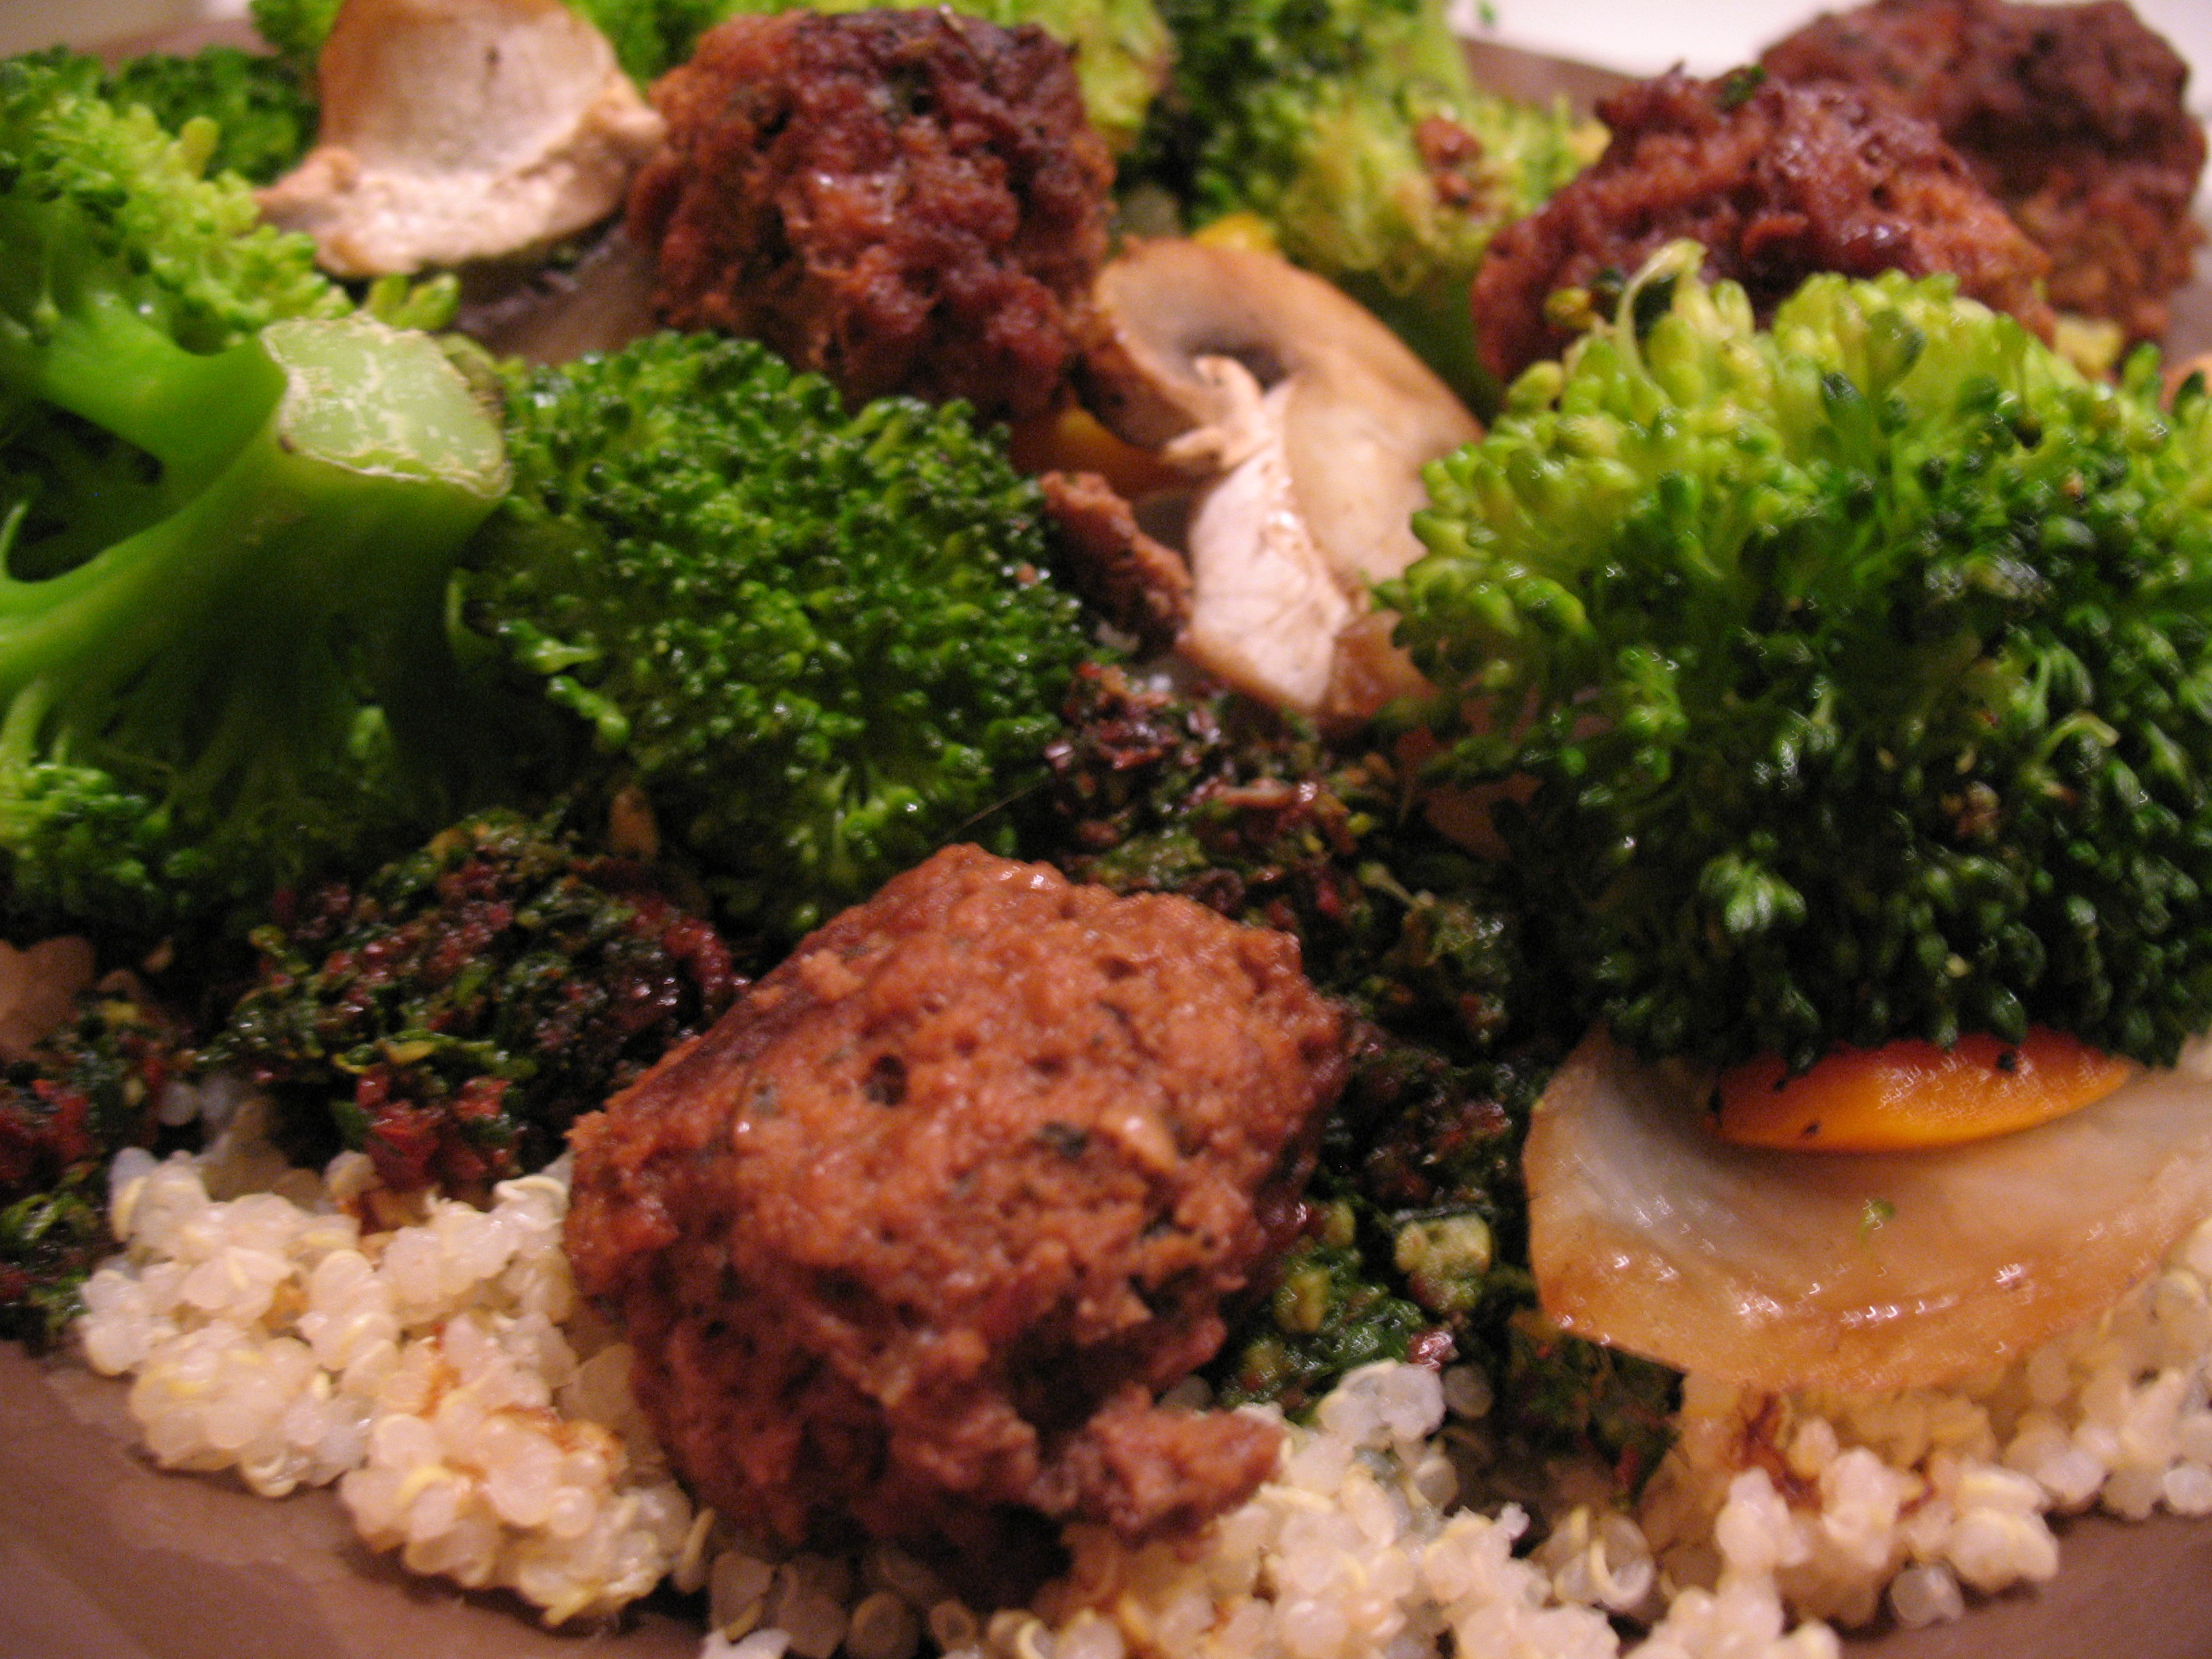 Roasted Veggies with quinoa, raw pesto, & meatballs